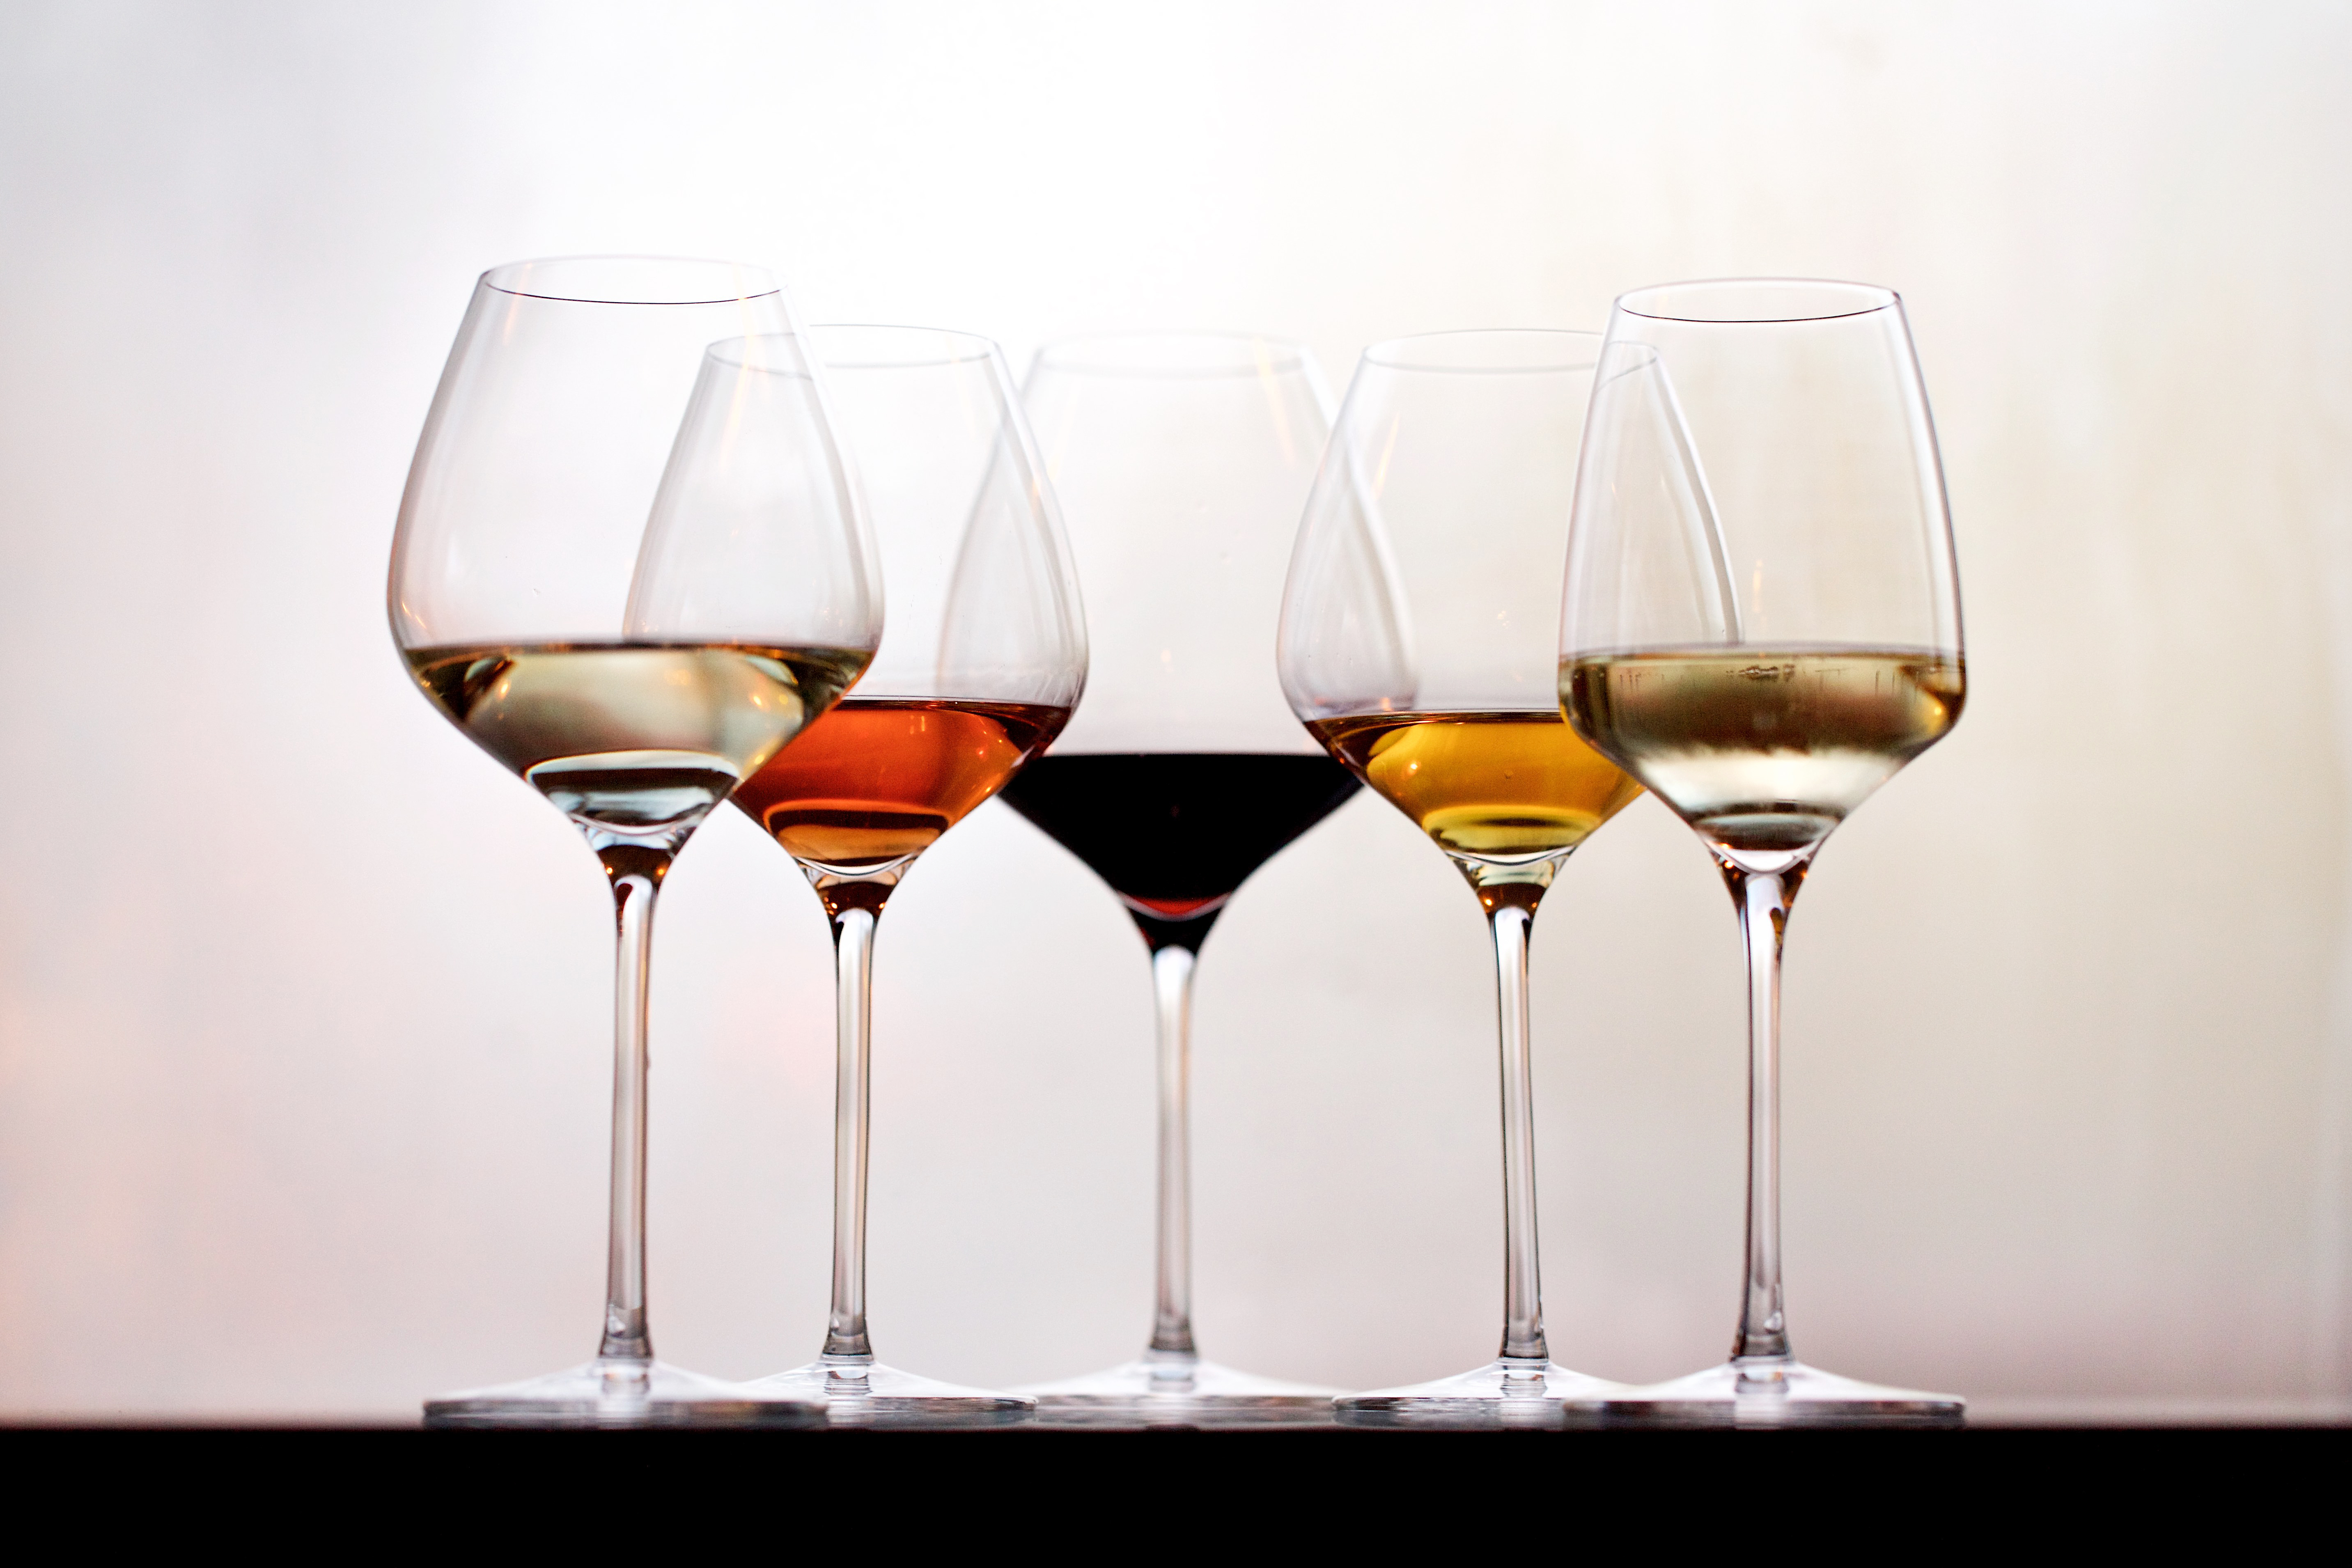 washingtonpost.com - When it comes to wine, weird is the new normal - and that's for the better